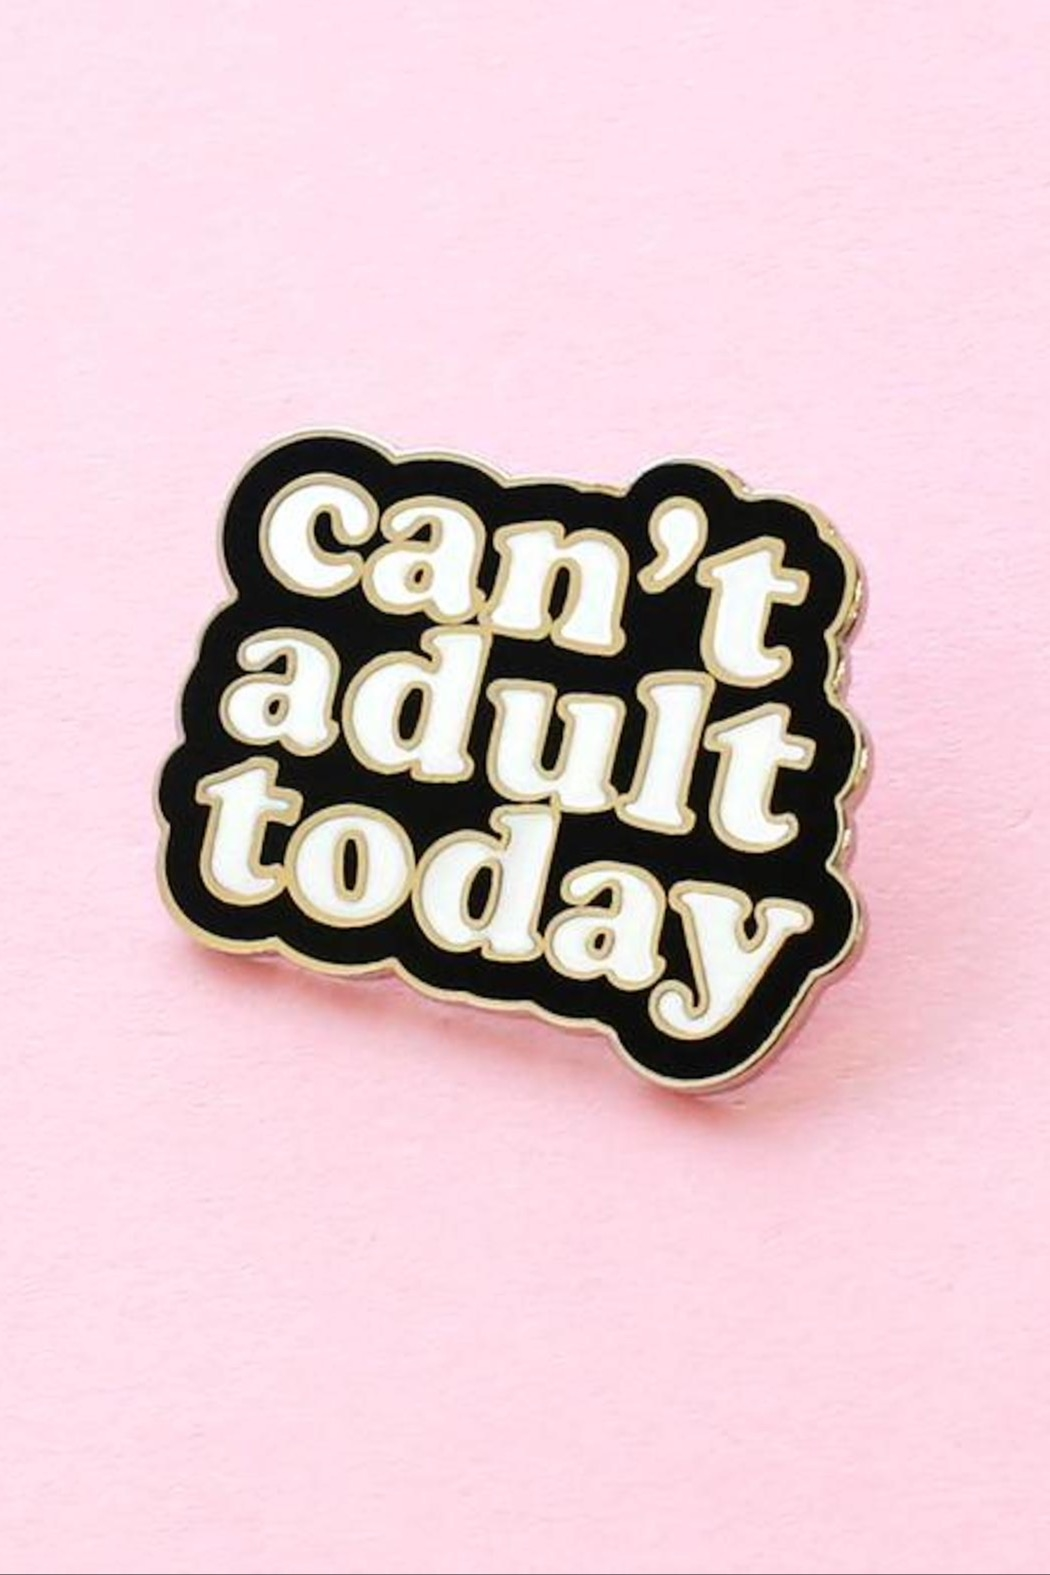 Old English Co. Can't Adult Today Enamel Pin - Main Image